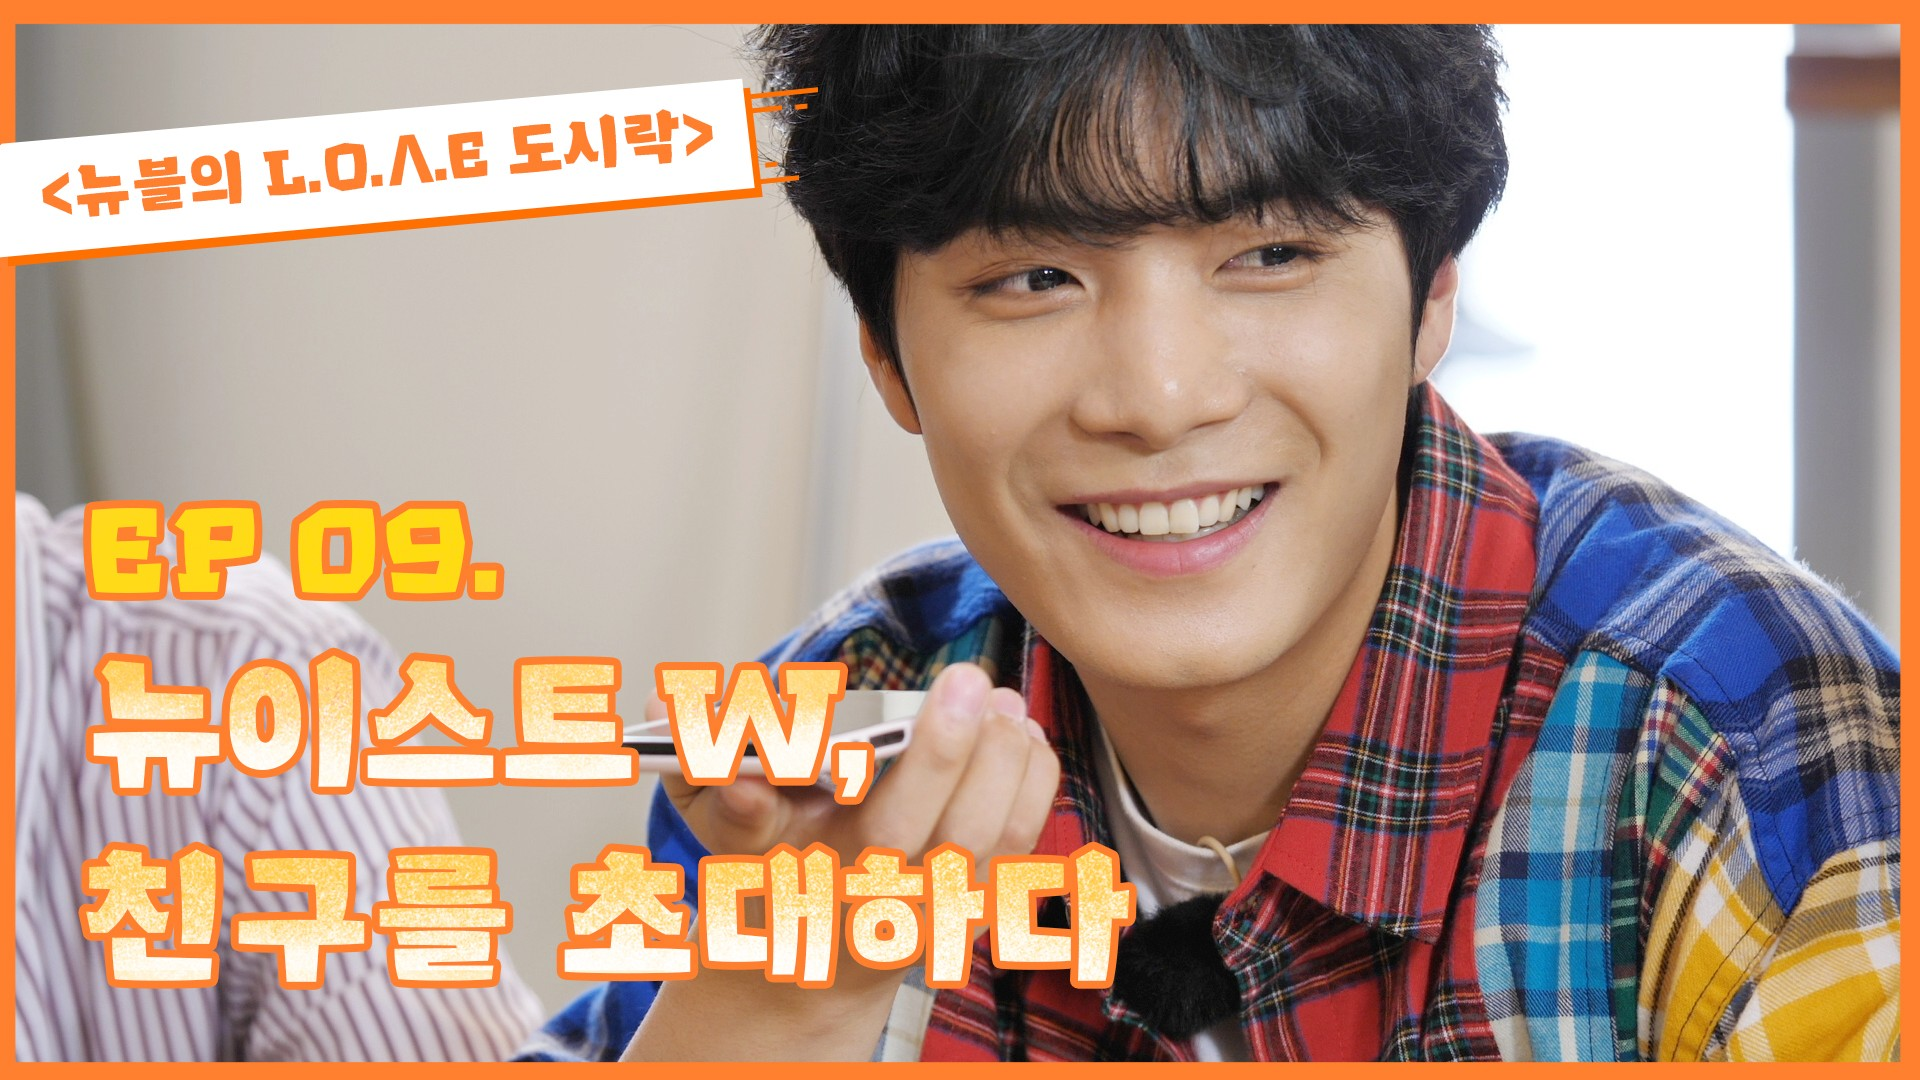 <뉴블의 L.O.Λ.E 도시락>EP9.뉴이스트 W, 친구를 초대하다/ EP9.Invite Friends - NU'EST W's Boxed Meal